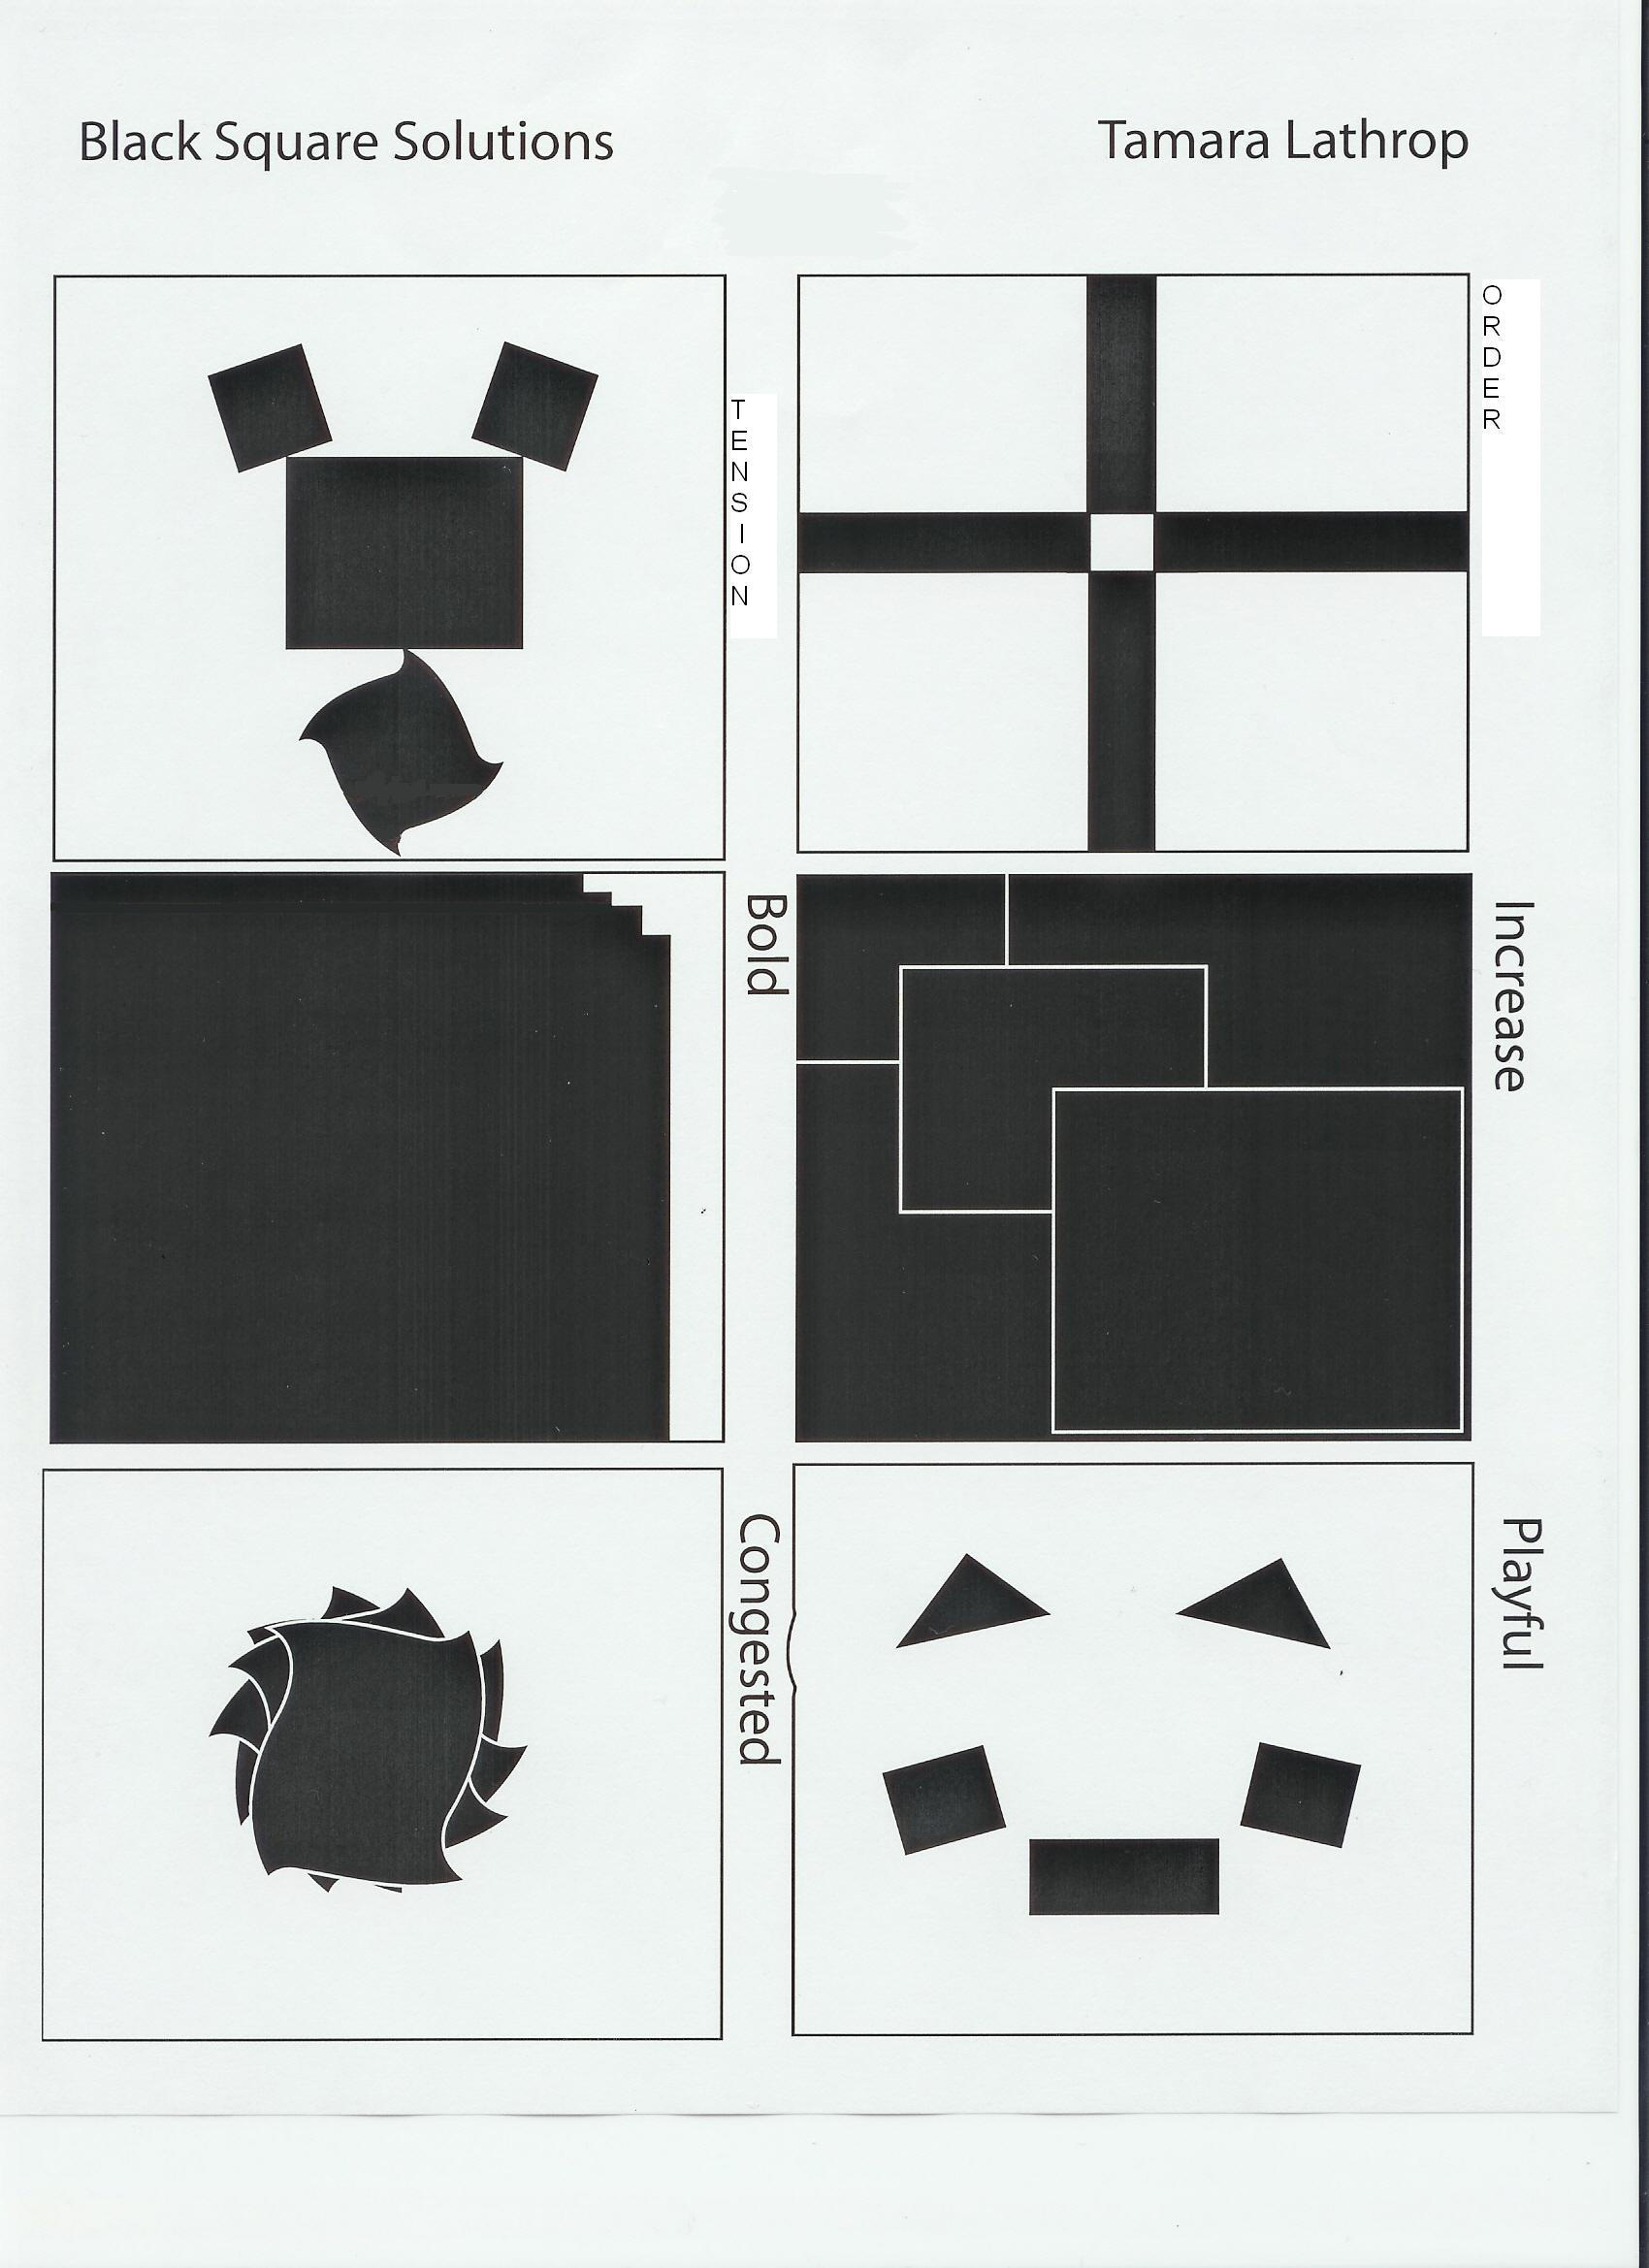 Black square solutions by Tam37 on DeviantArt